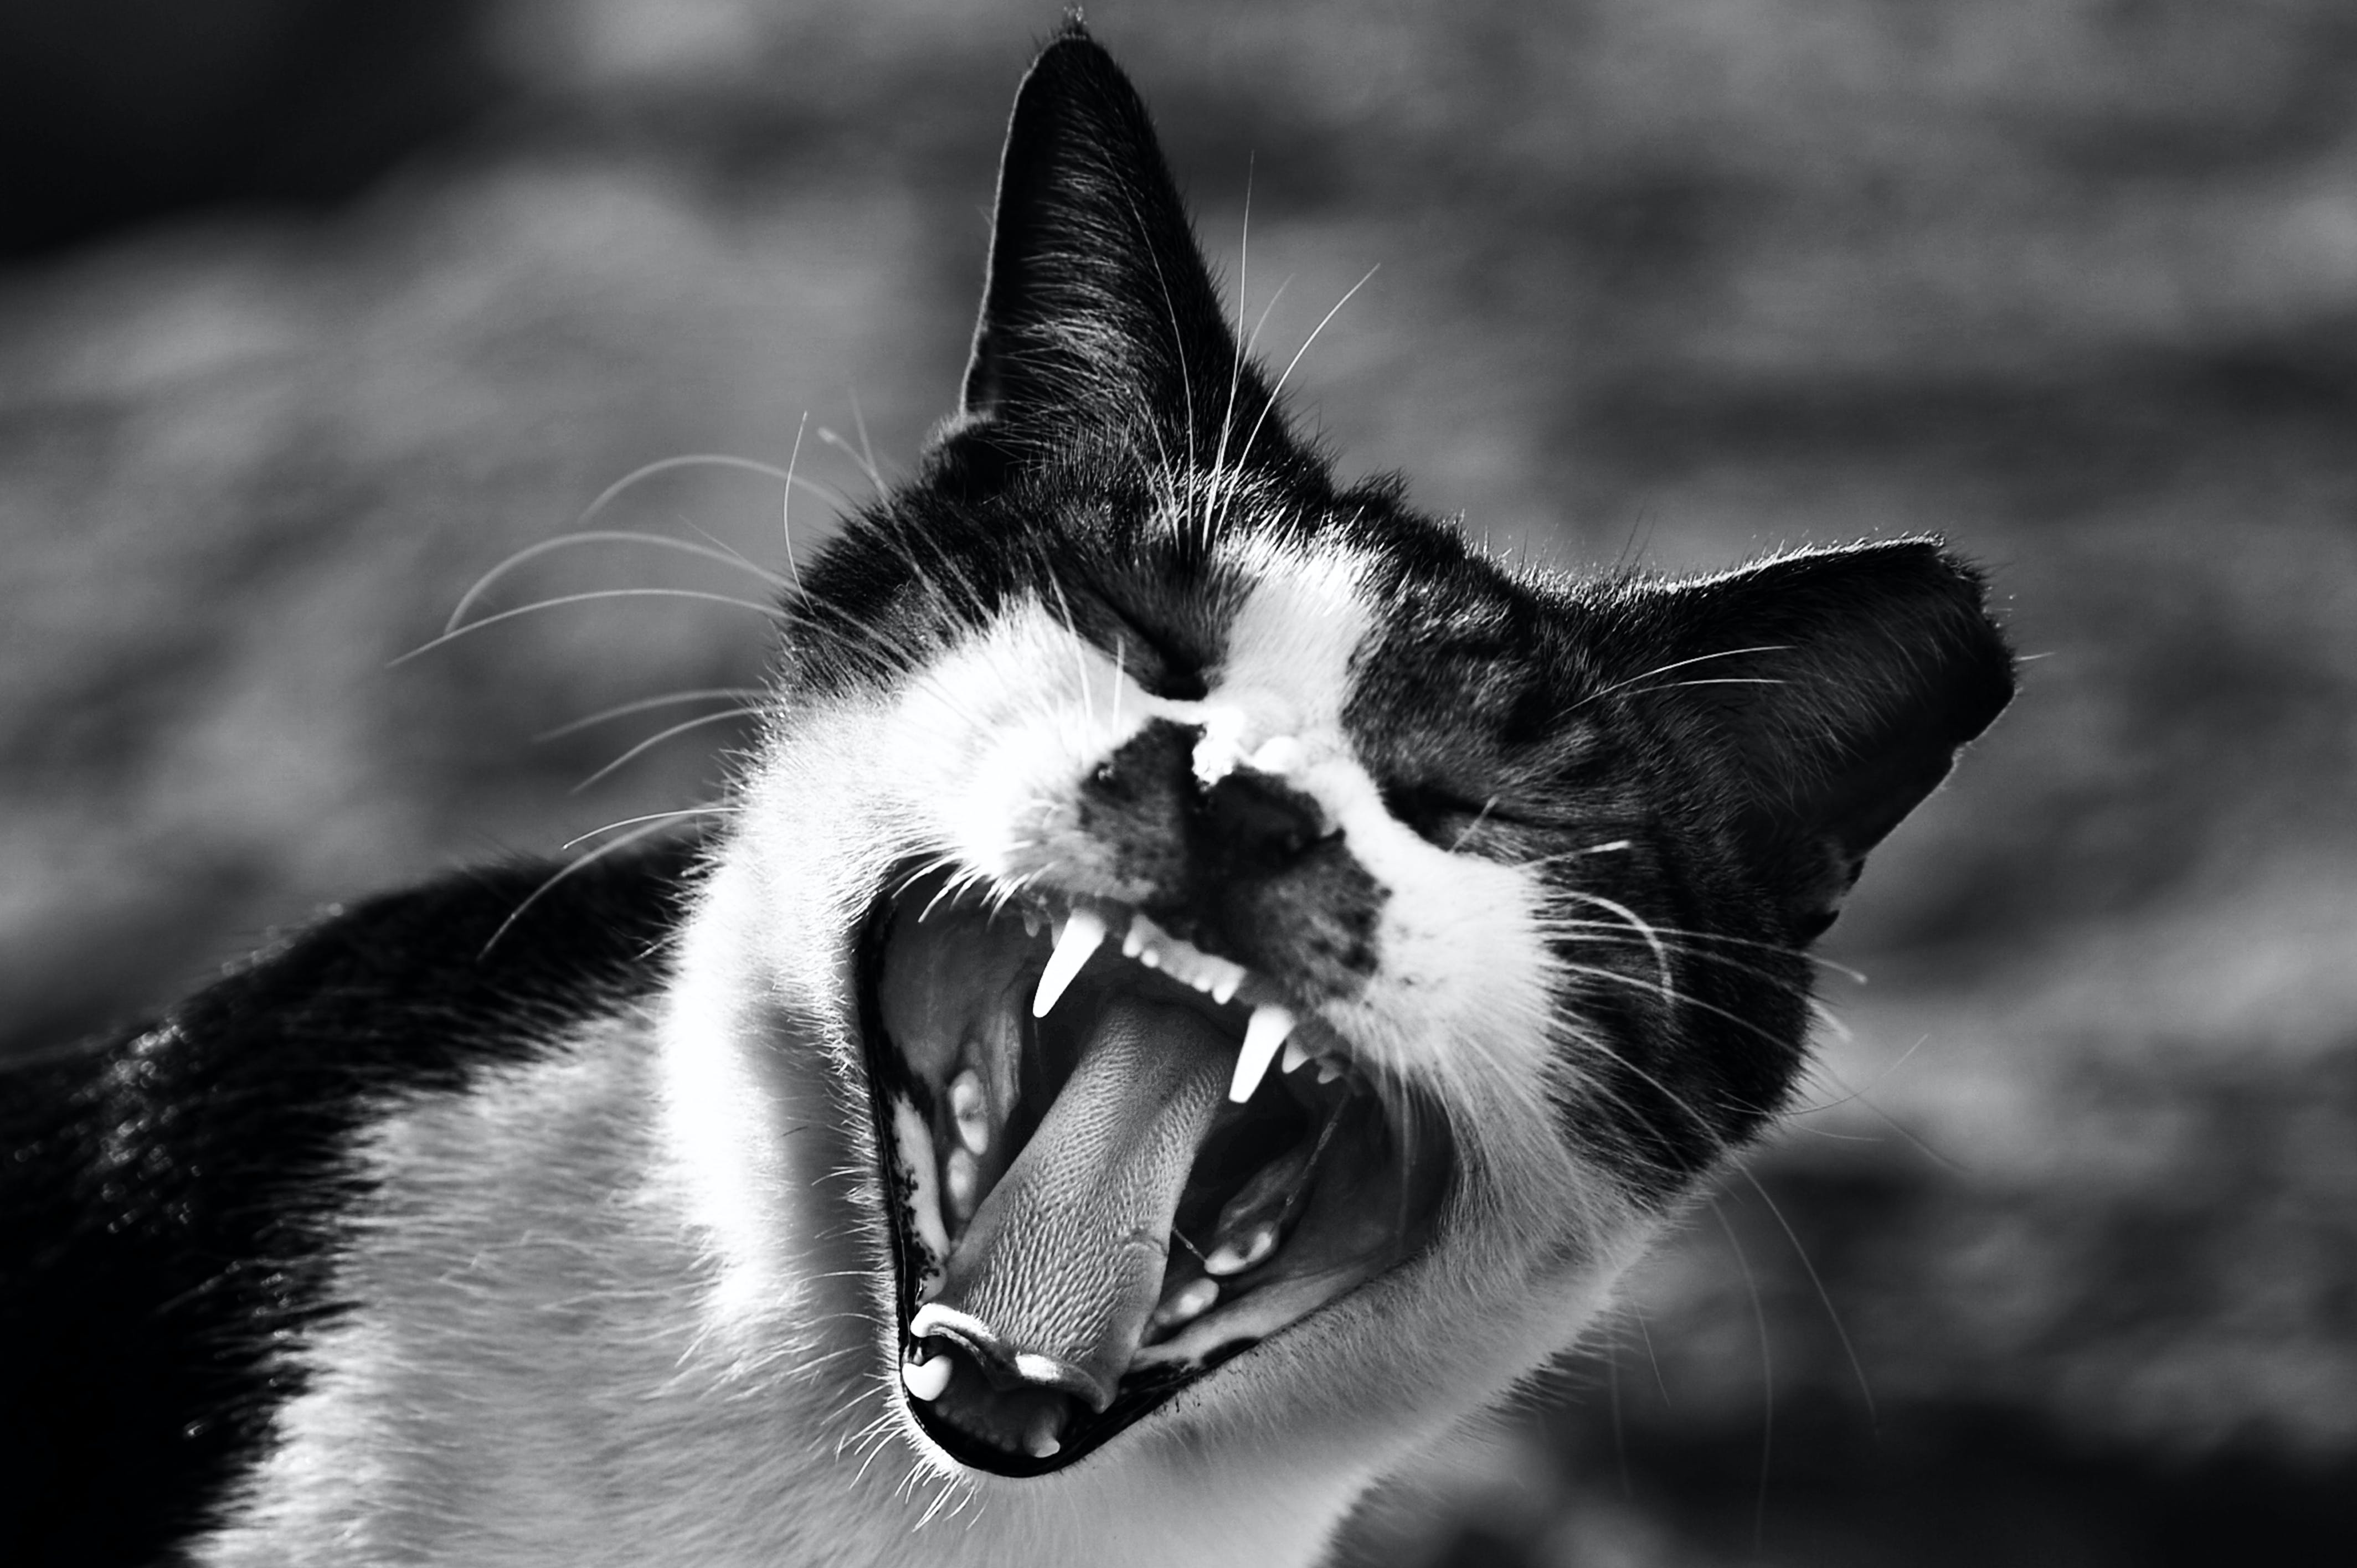 Gray Scale Photo of Cat Showing Mouth